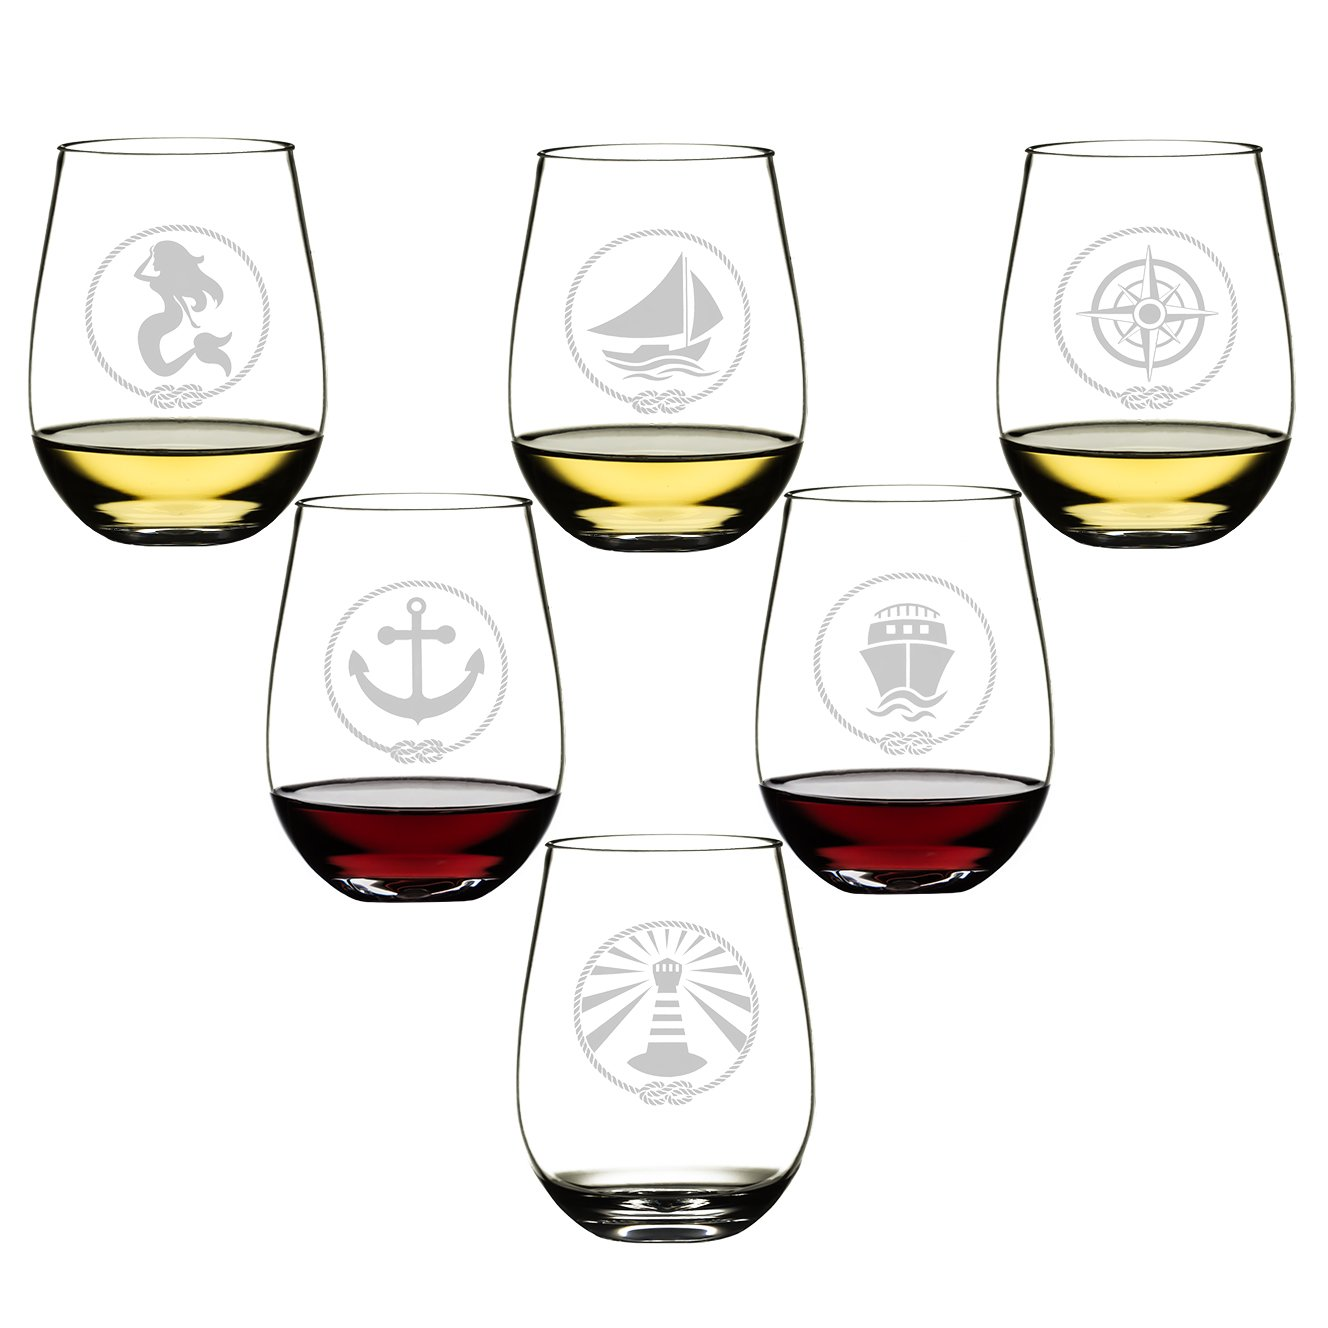 SET OF 6 -Stemless Wine Glasses-Nautical Themed, Resturant Quility Plastic, 14oz, Best Shatter Proof Drinking Glass for Wine, Cocktails or gifts by DaJosie Co. (Image #1)